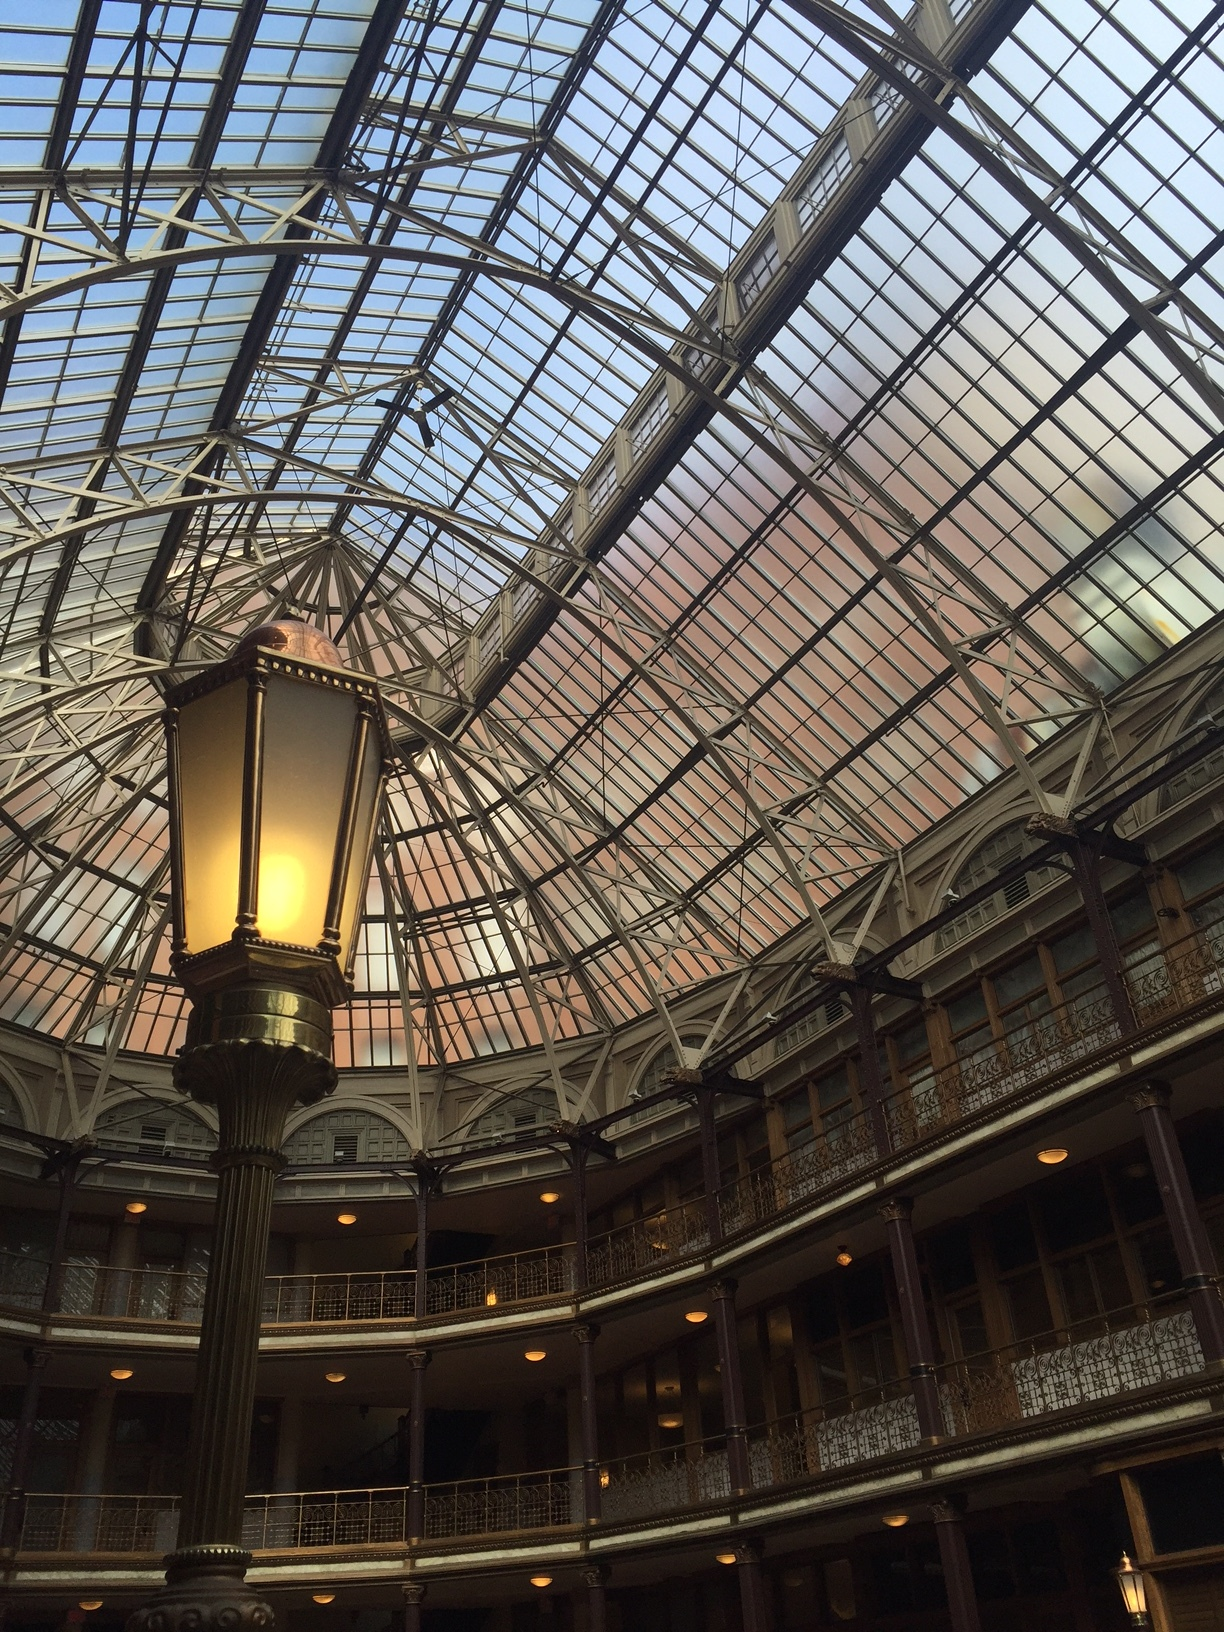 Isn't the Old Arcade just beautiful?! One of my favorite spots in Cleveland!